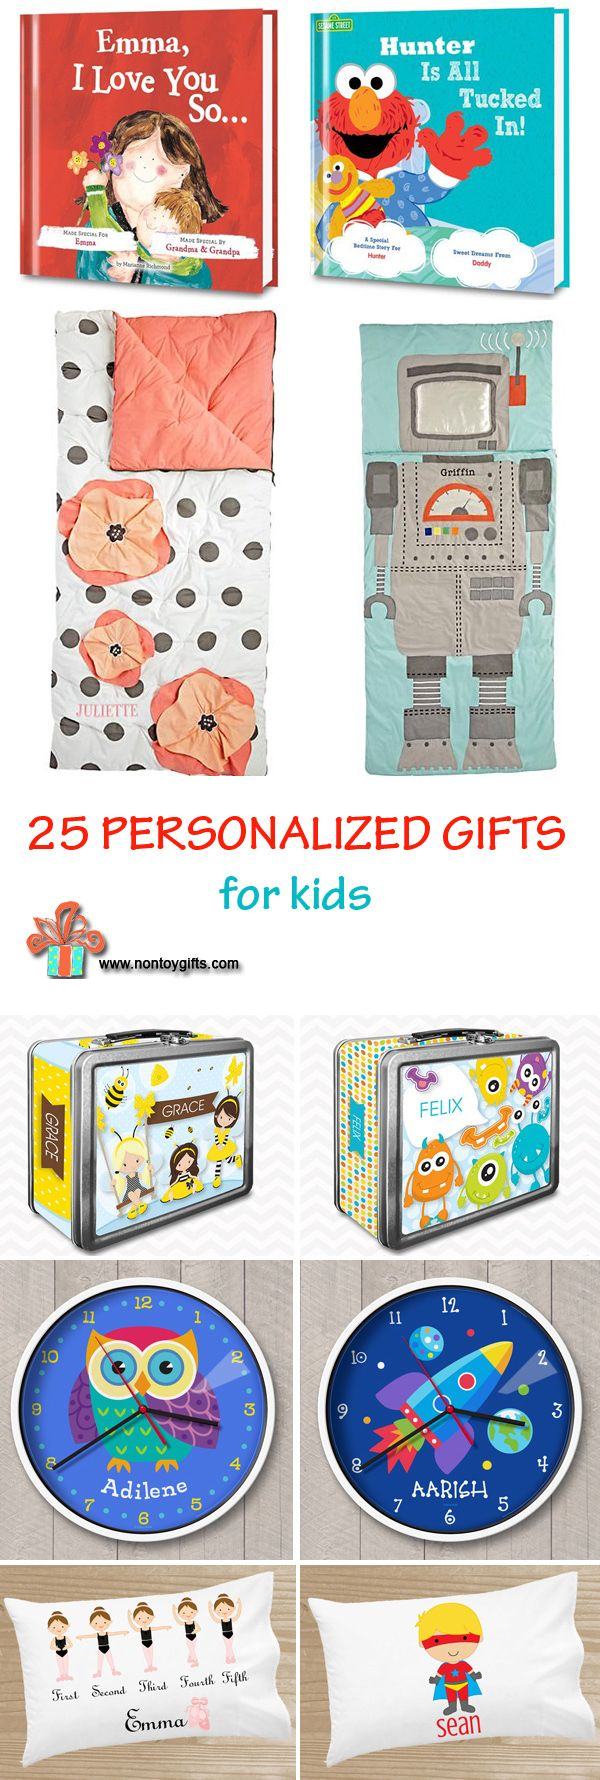 25 Personalized Gifts For Kids The List Includes Gift Ideas Of All Ages From Babies To Older Birthday